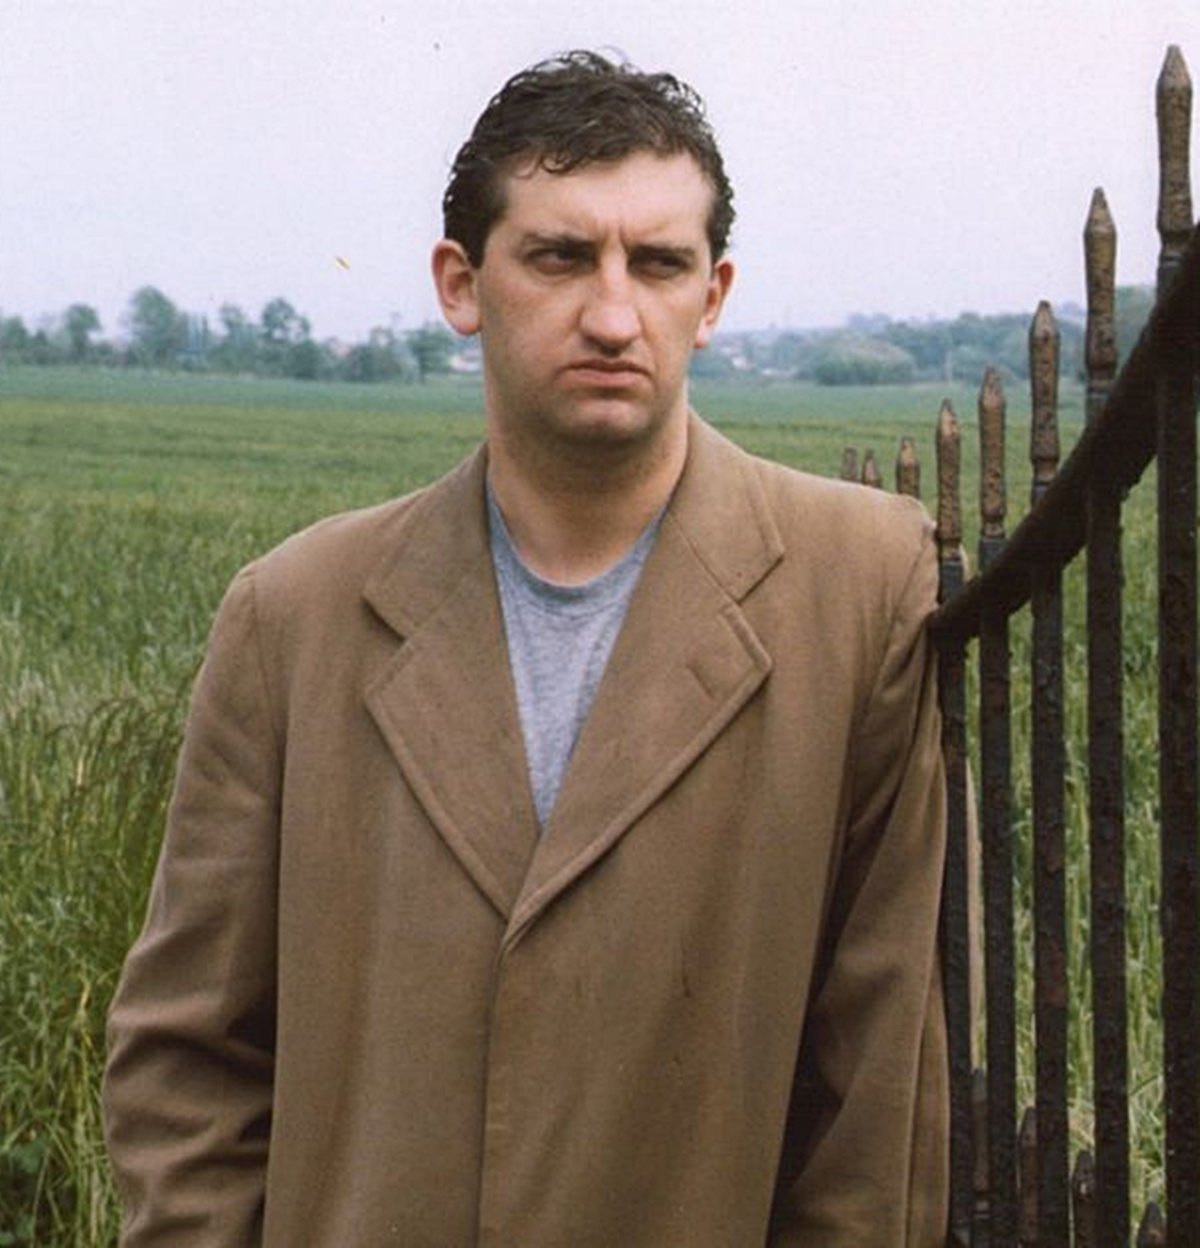 1 42 21 Things You Probably Didn't Know About Auf Wiedersehen, Pet